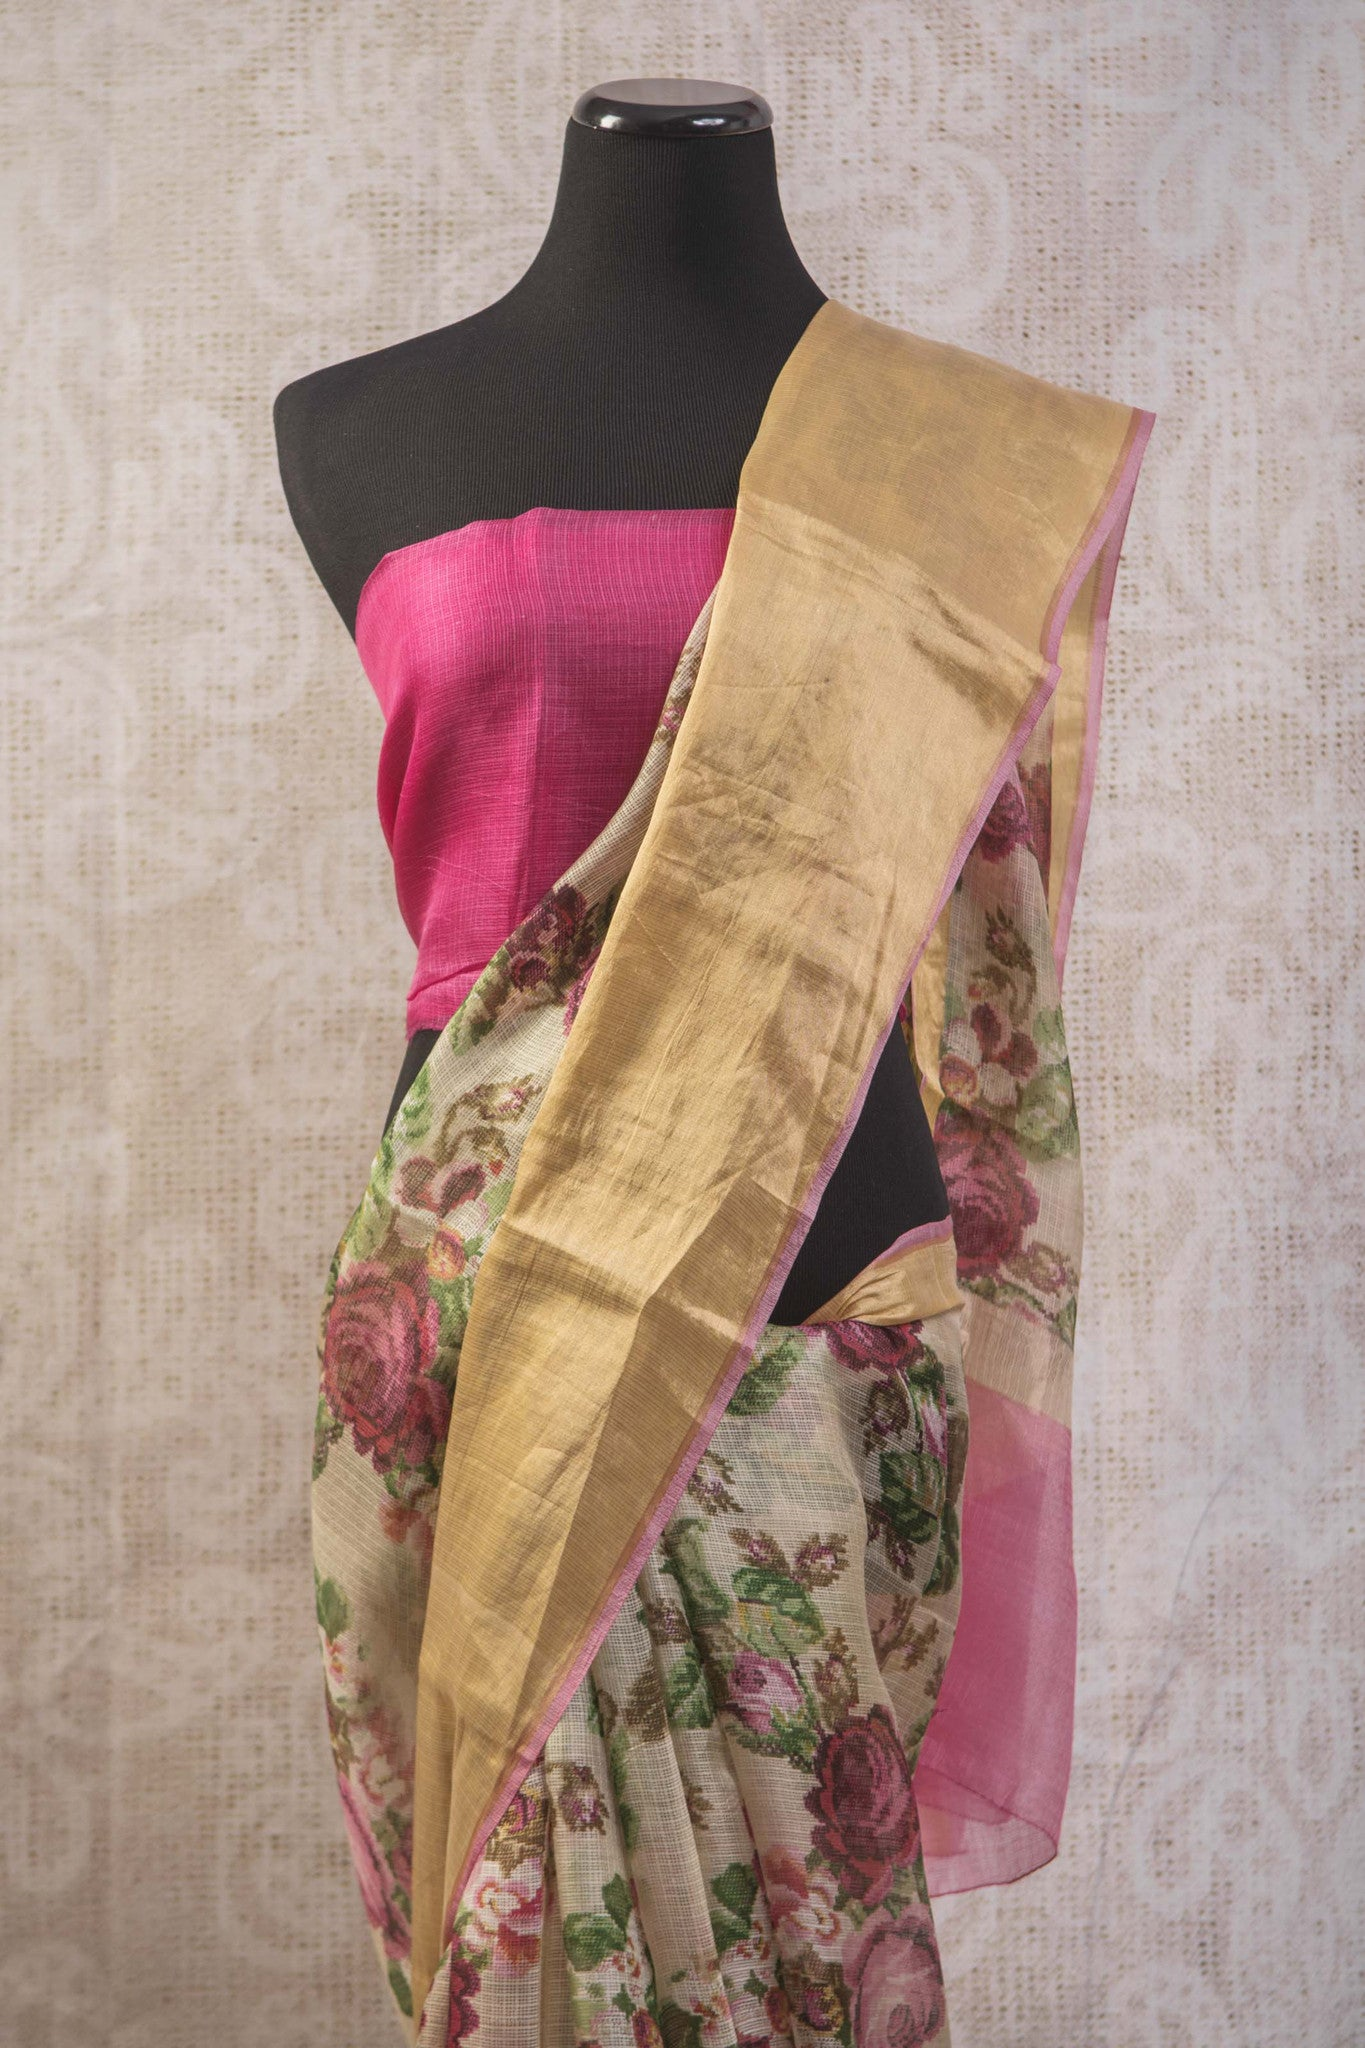 90b745 Indian zari kota saree online at Pure Elegance with gold trim border and an un-stiched pink blouse piece. This printed floral saree is an evergreen pick!